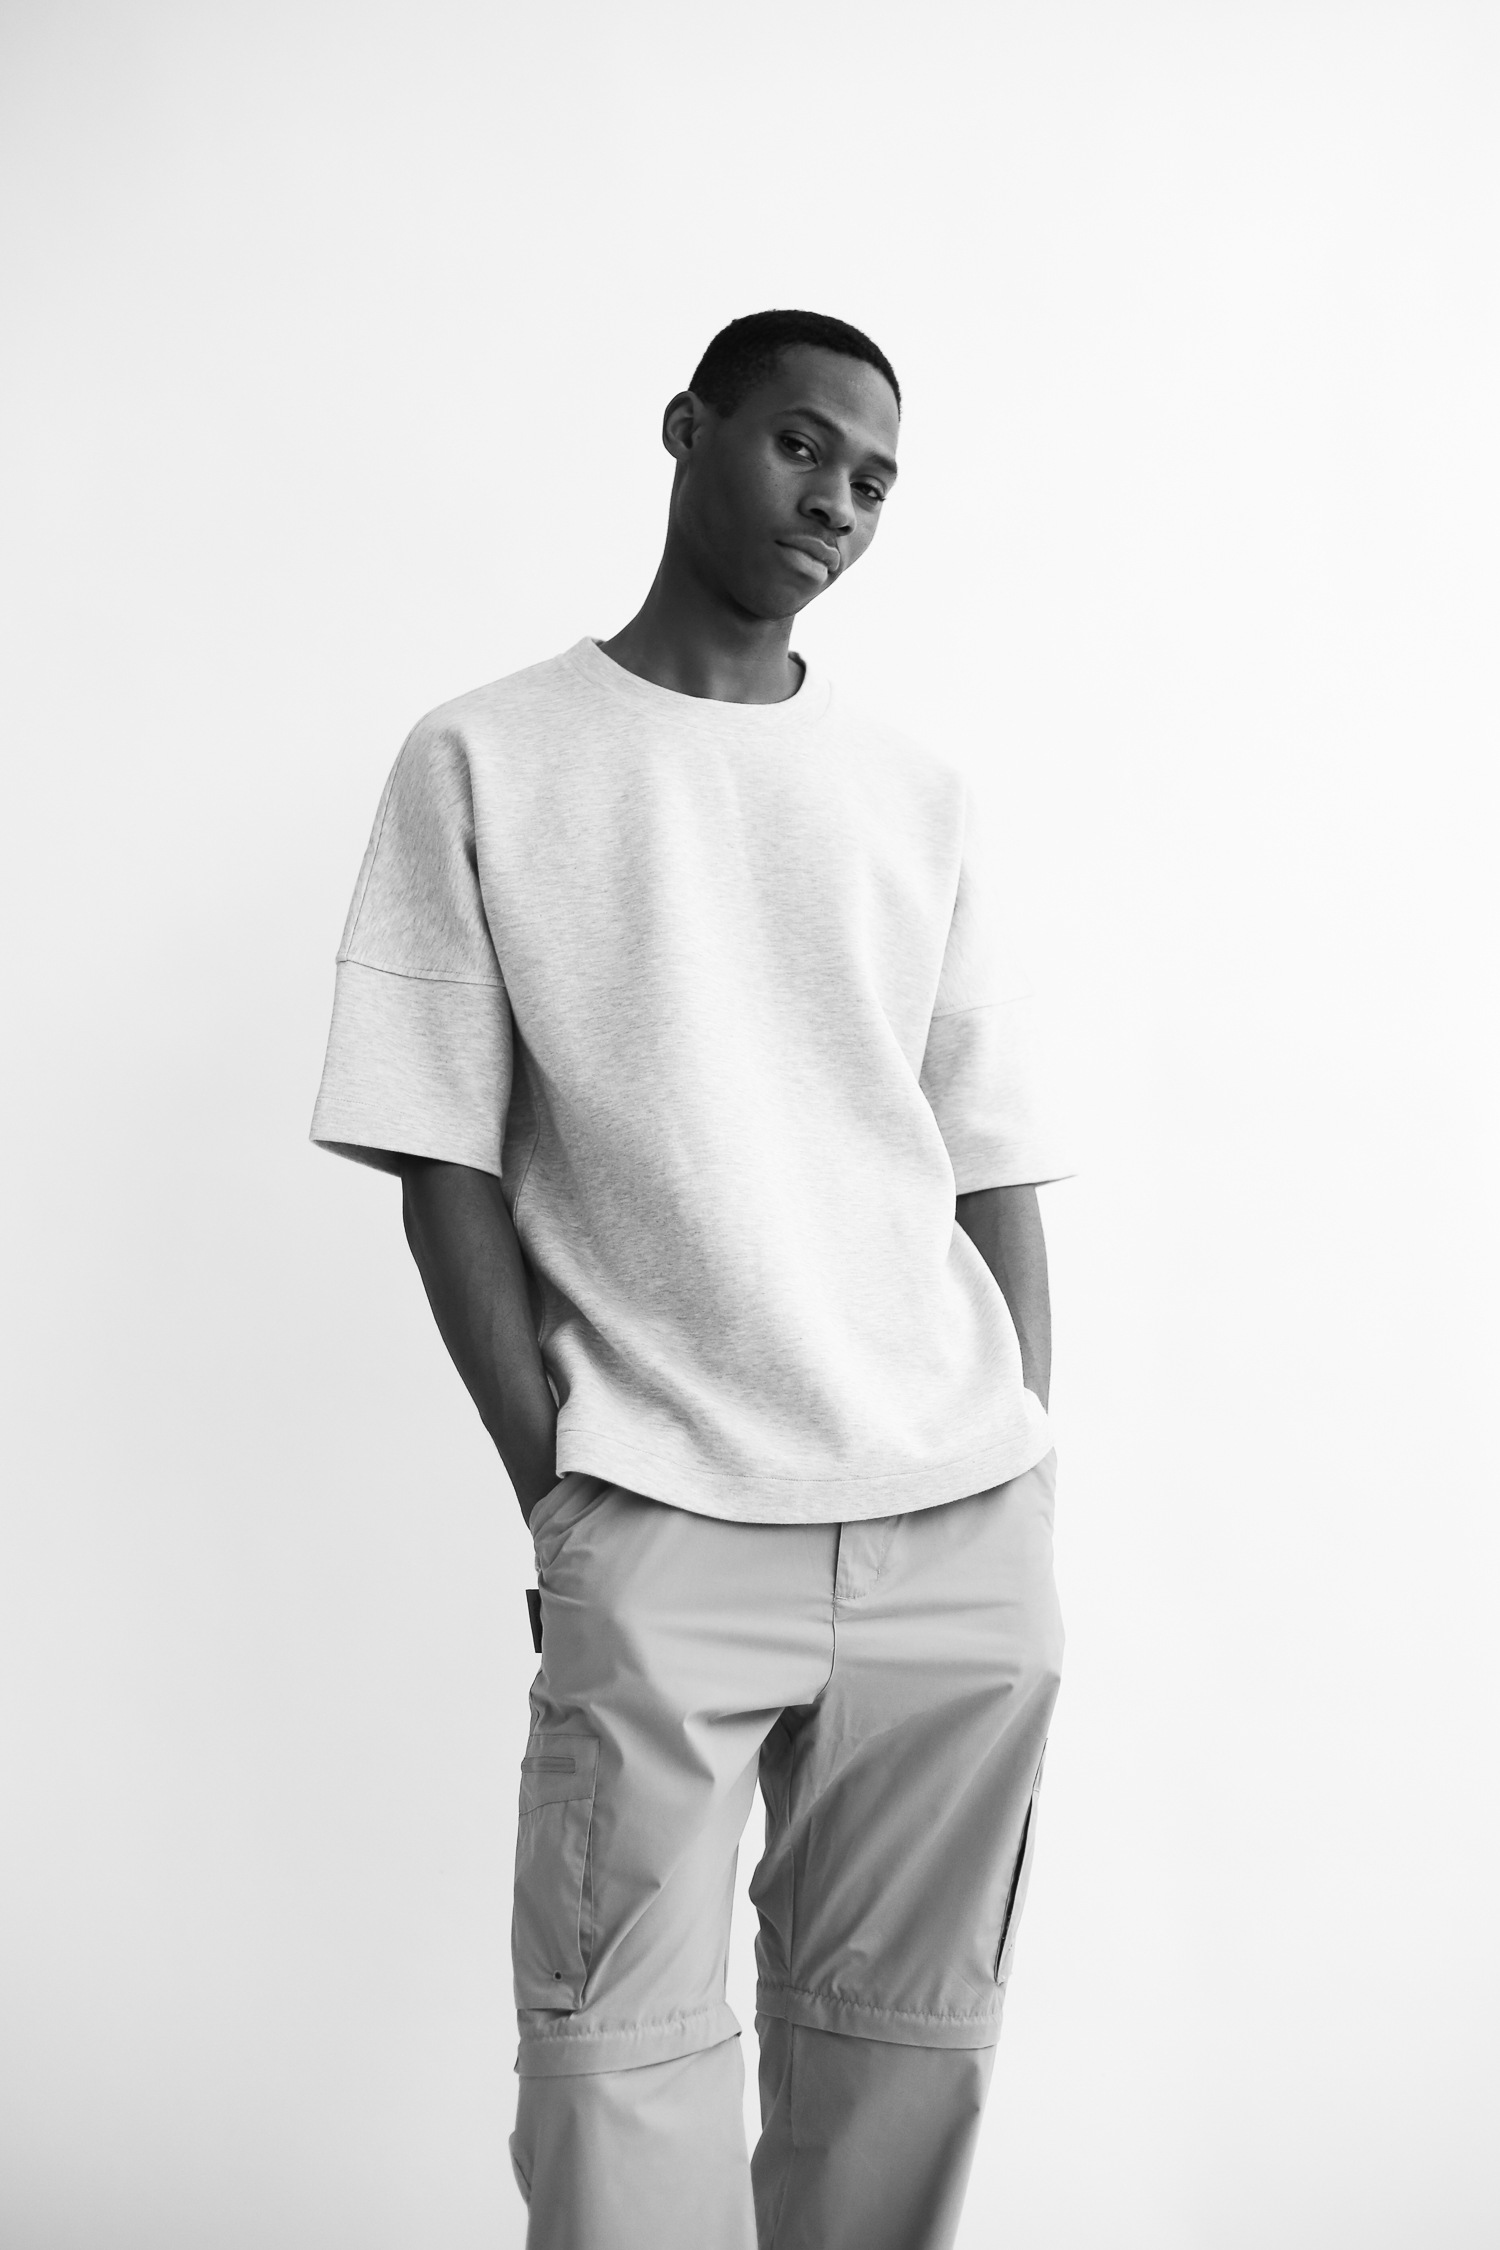 Lu Akinwale is a new model talent at First Model Management London. He already worked for Gucci, Moncler, Joshua Kane and Adidas.